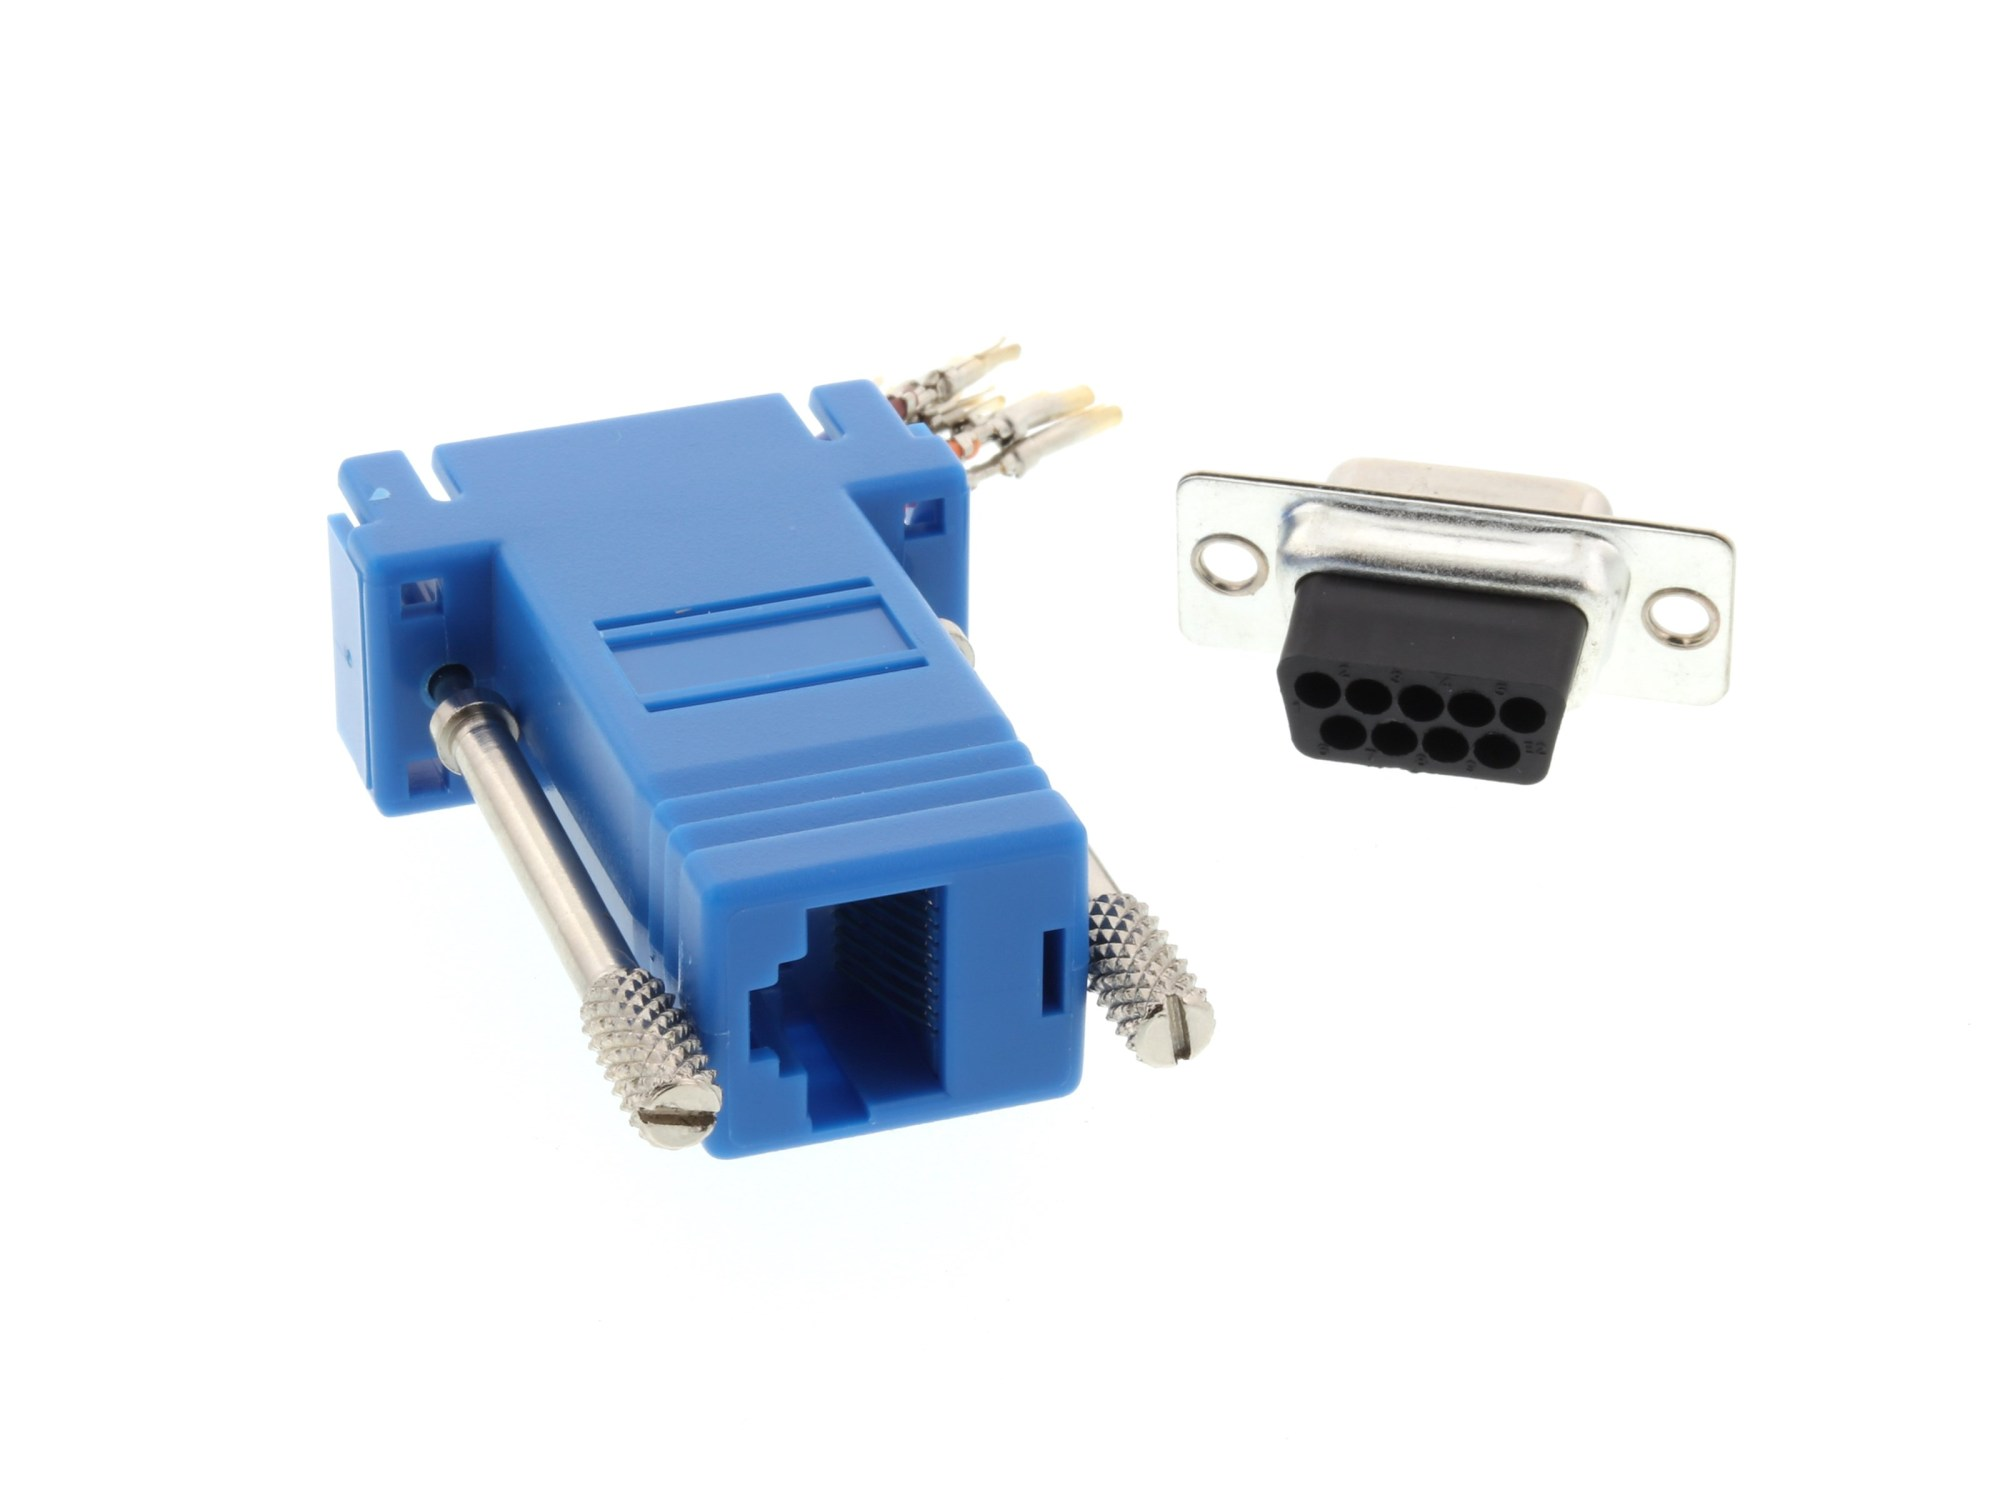 hight resolution of  picture of modular adapter kit db9 female to rj45 blue